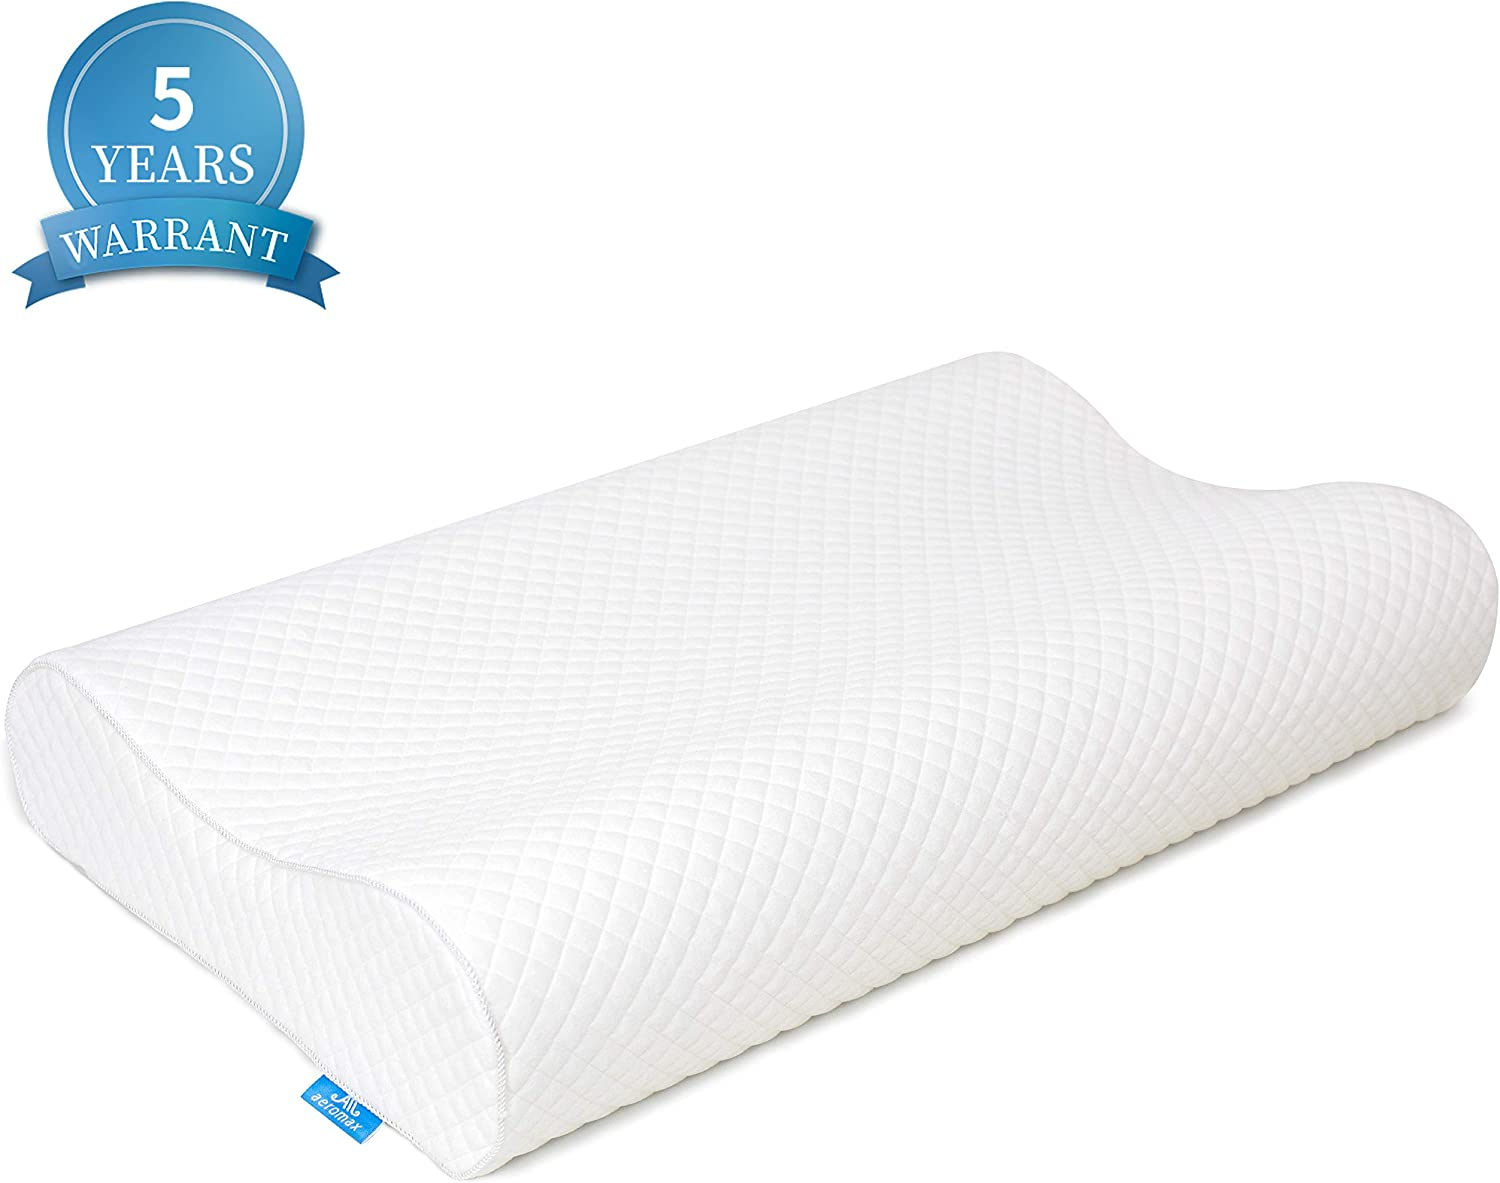 AM AEROMAX Queen Contour Memory Foam Pillow, Orthopedic Sleeping Pillows, Cervical Pillow with Washable Pillowcase for Side, Back and Stomach Sleepers(Soft & White)